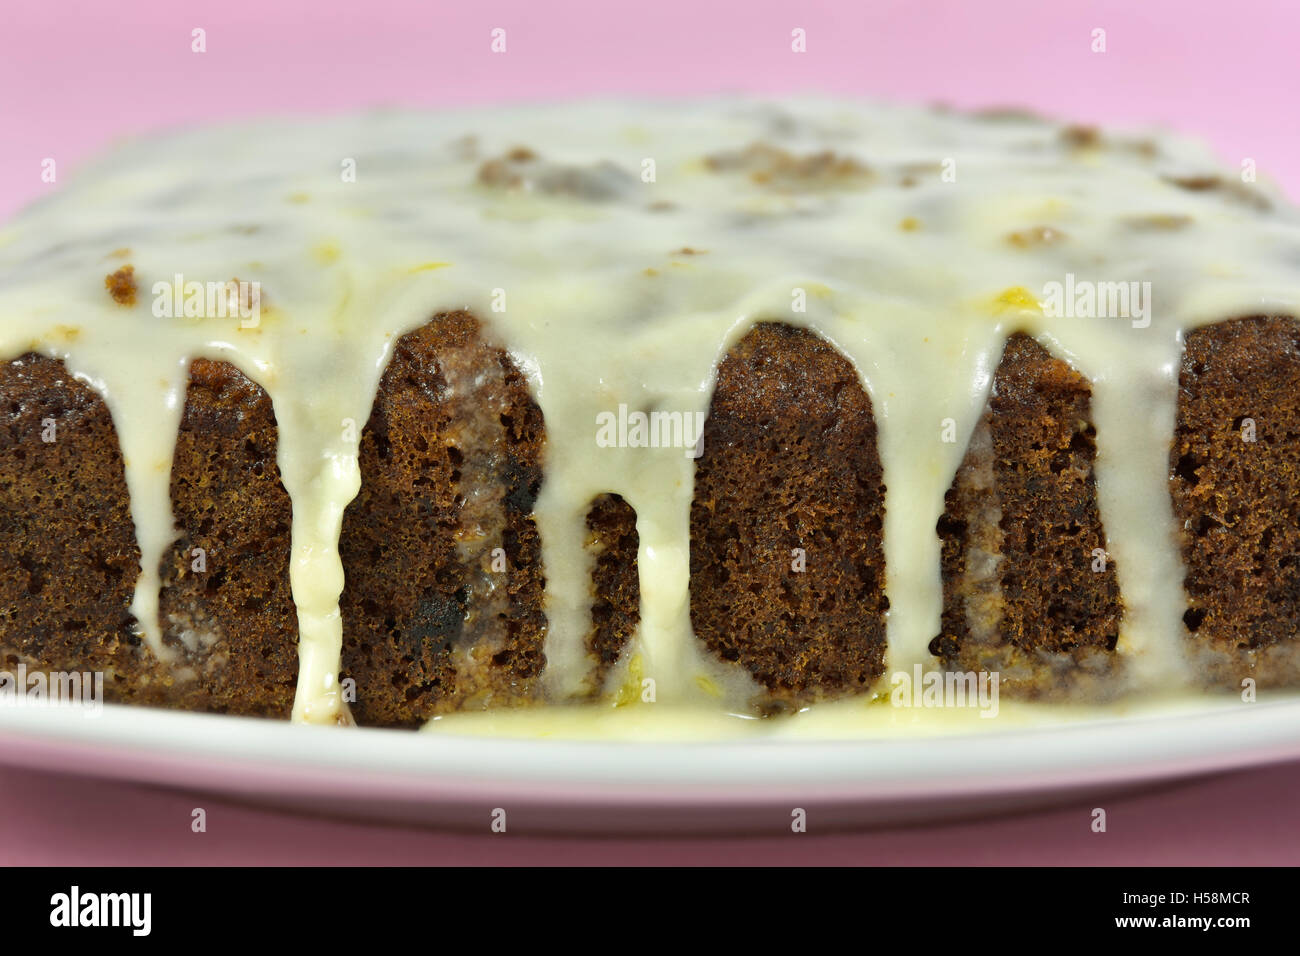 Home made carrot cake with icing against a pink background - Stock Image